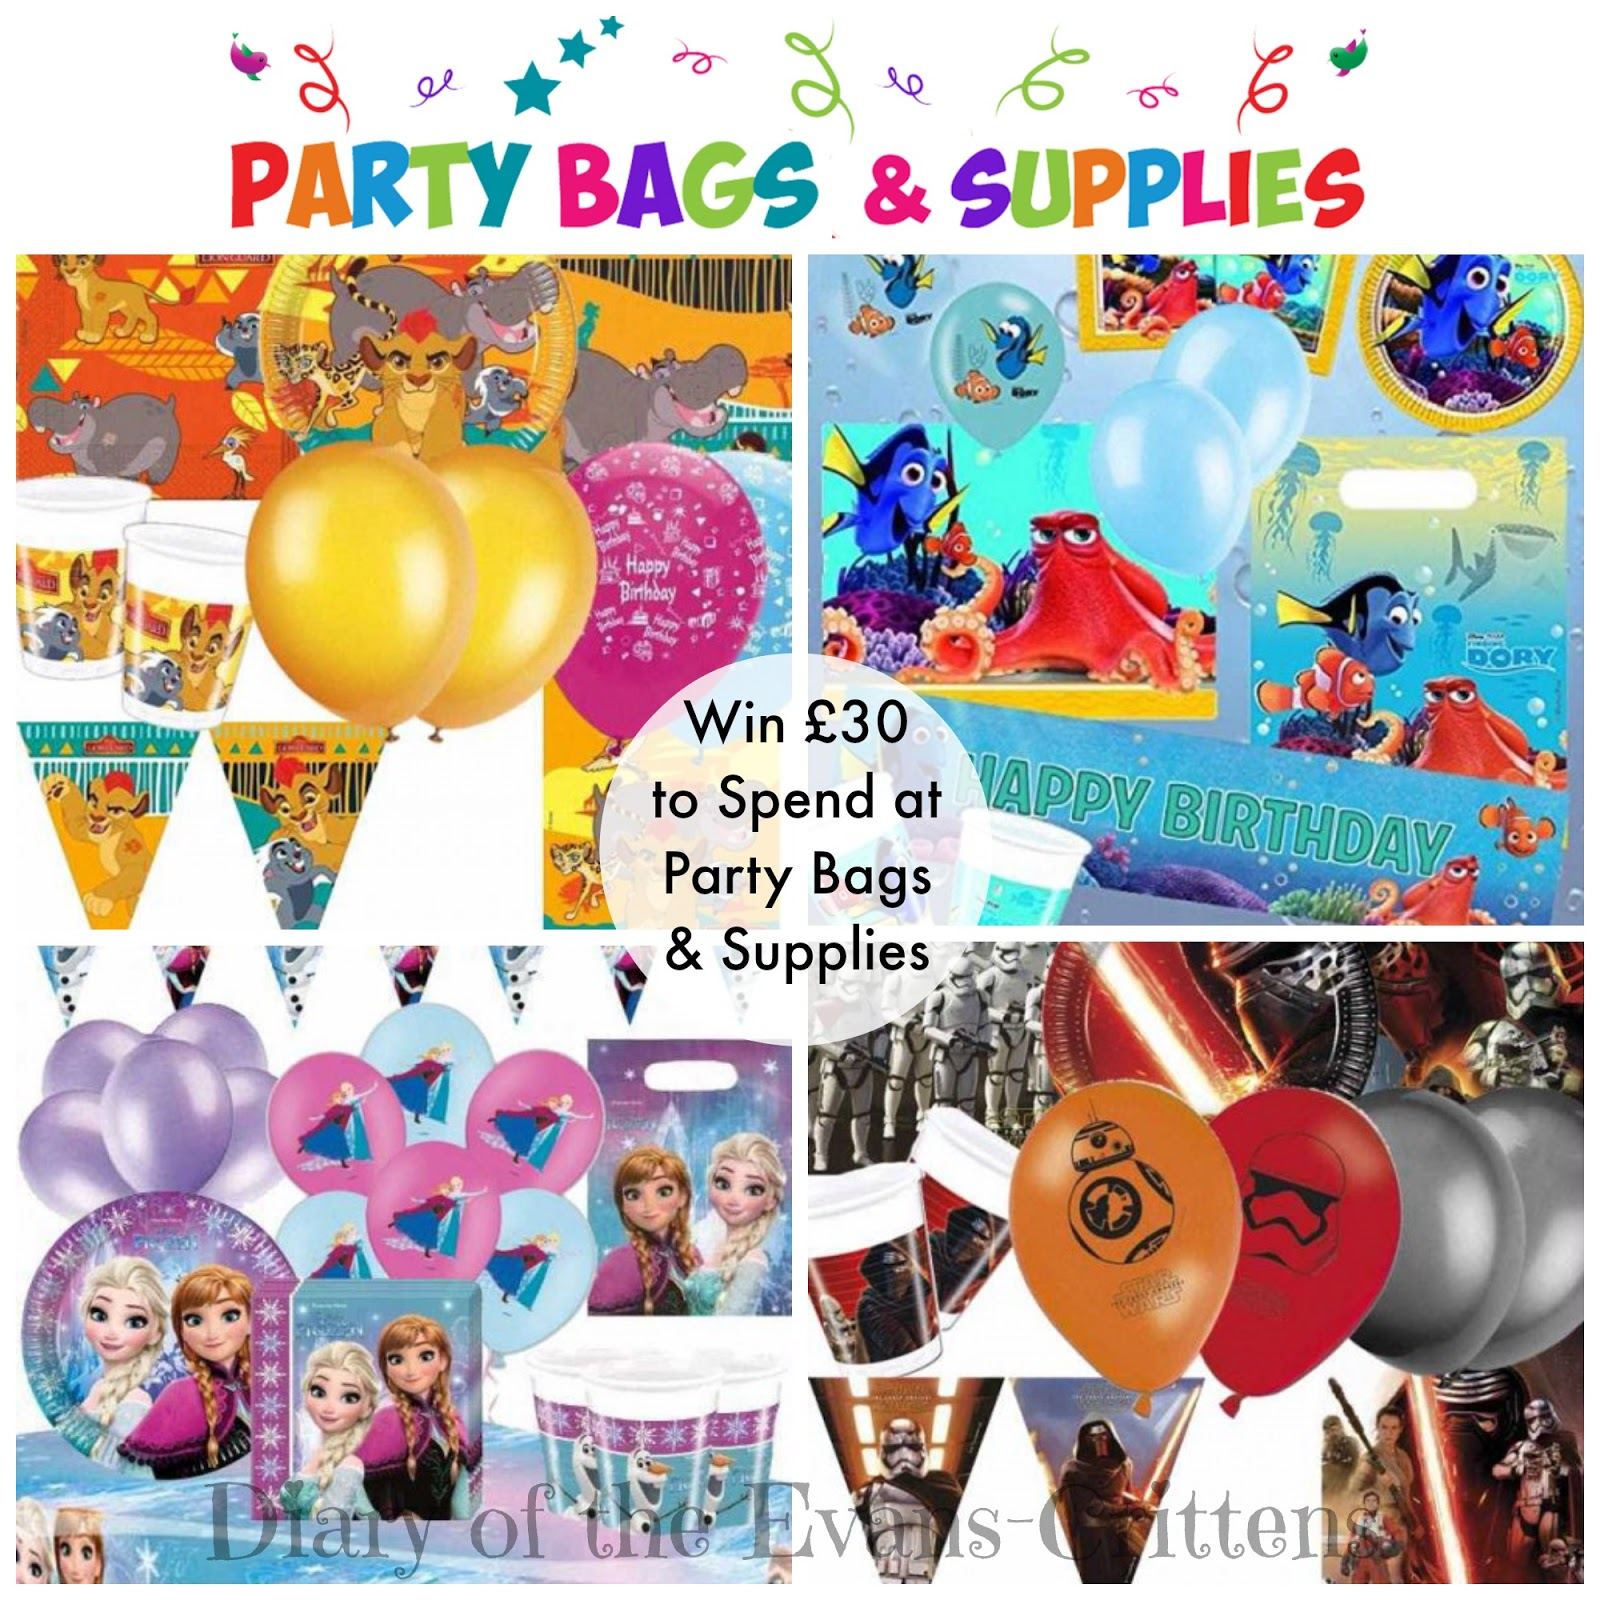 , Giveaway:  Win £30 to Spend at Party Bags and Supplies